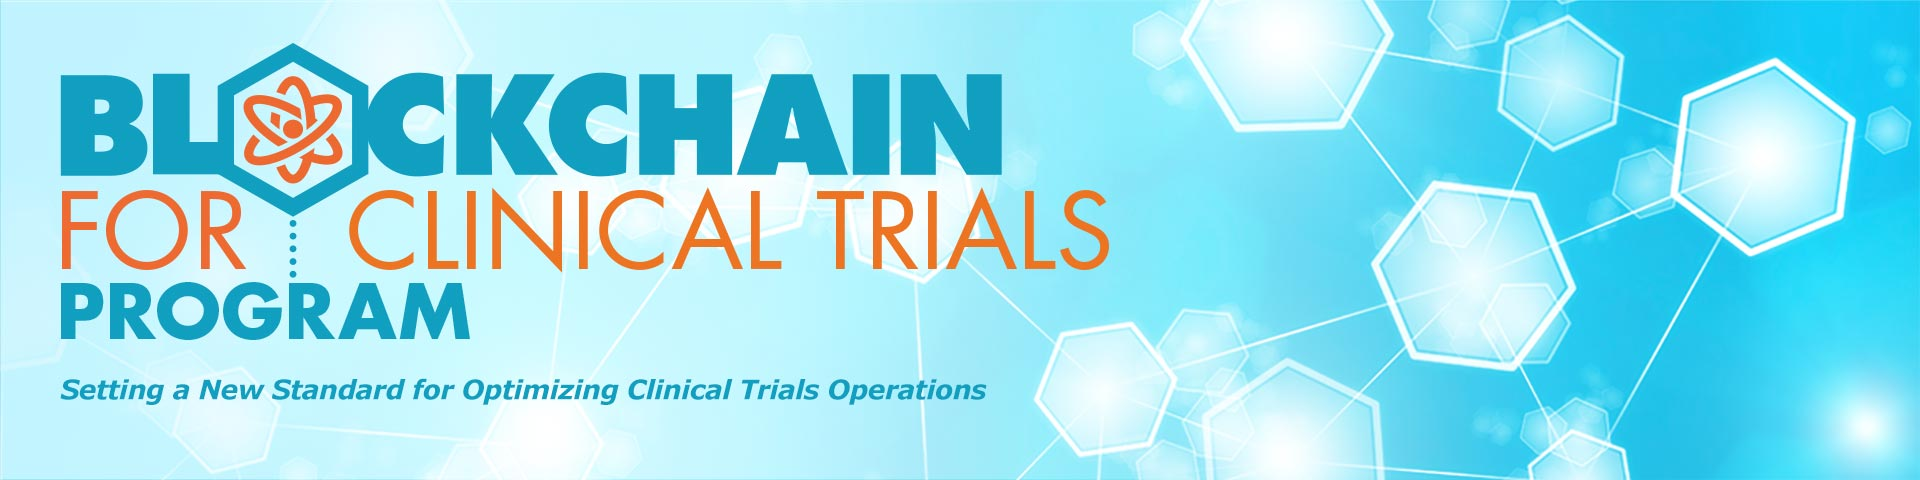 Blockchain for Clinical Trials Program